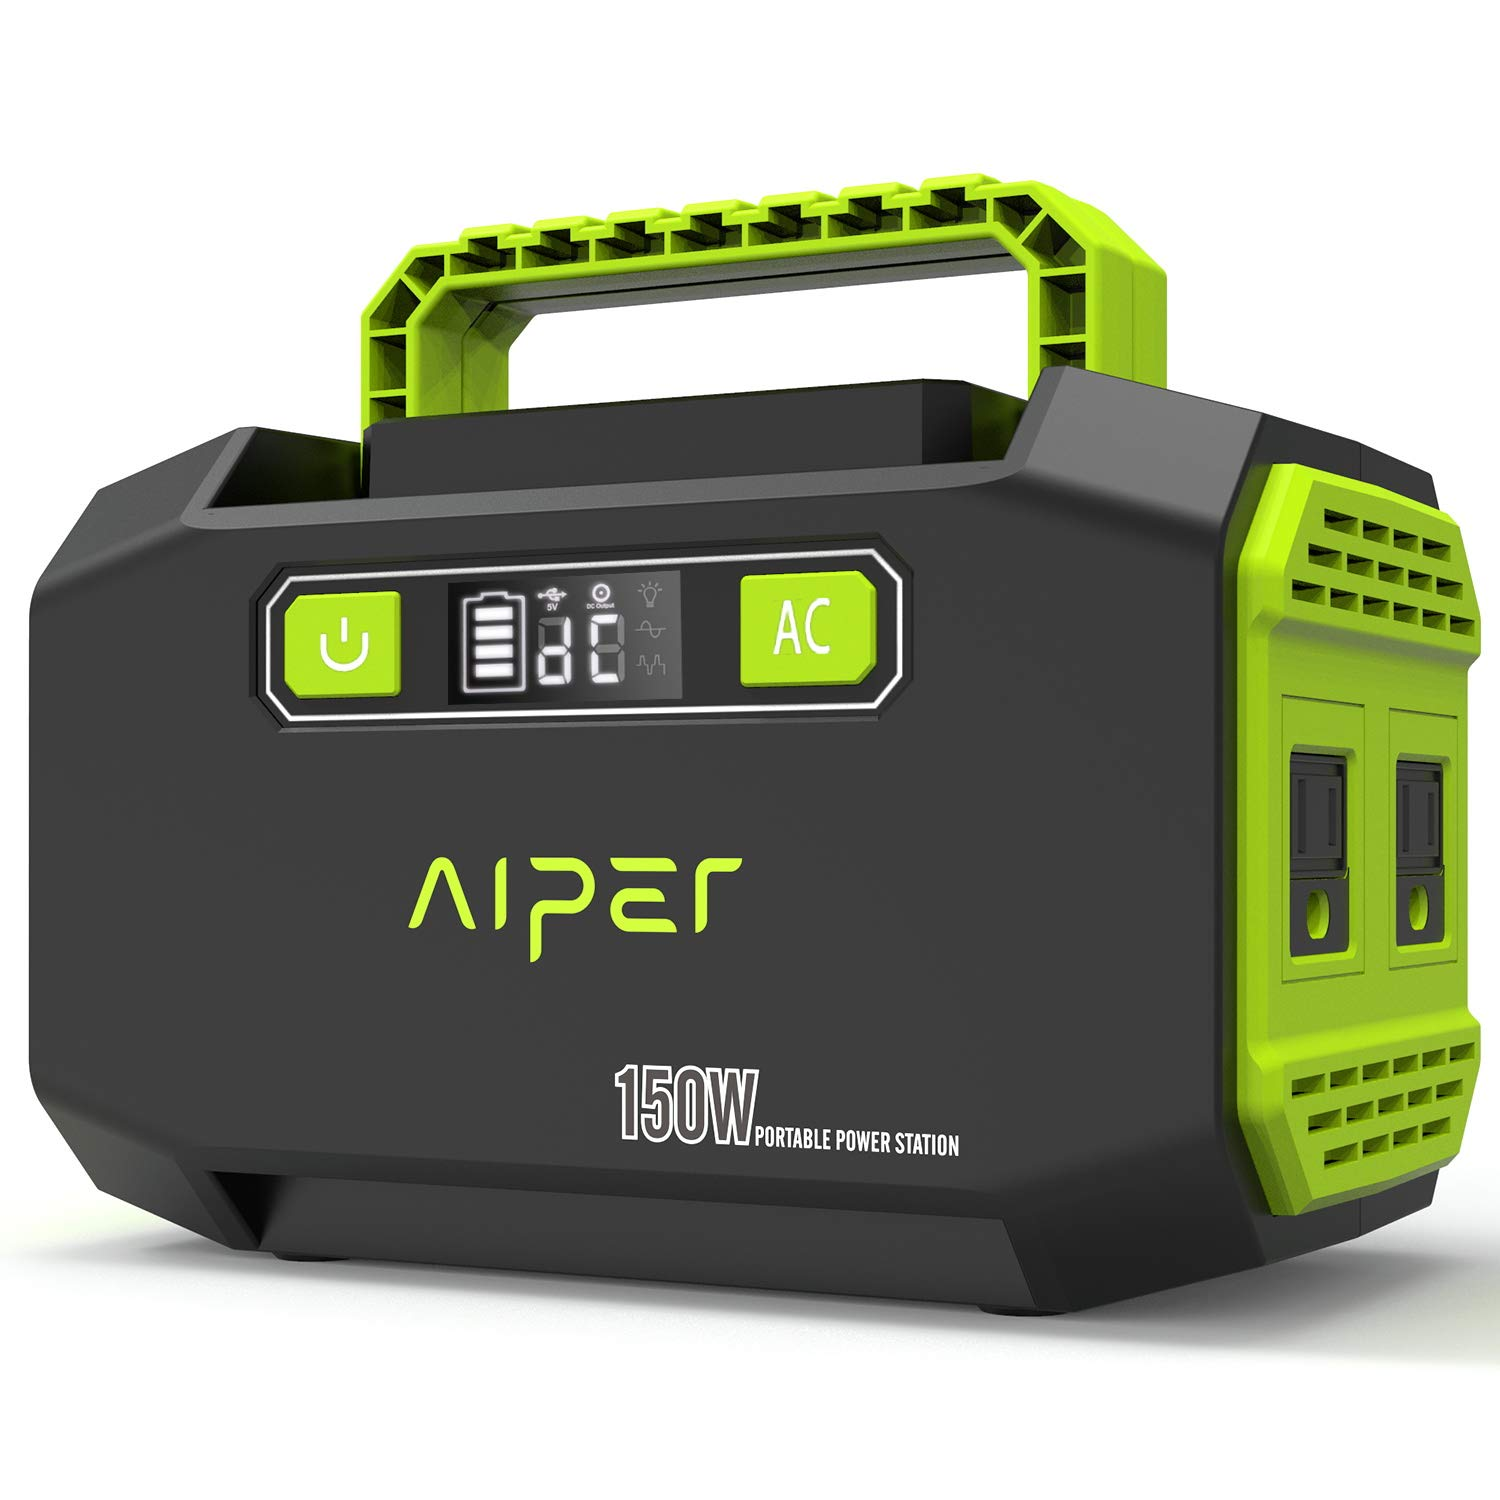 AIPER Portable Power Station 167Wh 45000mAh Solar Generator Lithium Battery Backup Power Supply with Dual 110V AC Outlet, 3 DC Ports, 2 USB Outputs for Home Emergency Camping CPAP Outdoors by AIPER (Image #1)